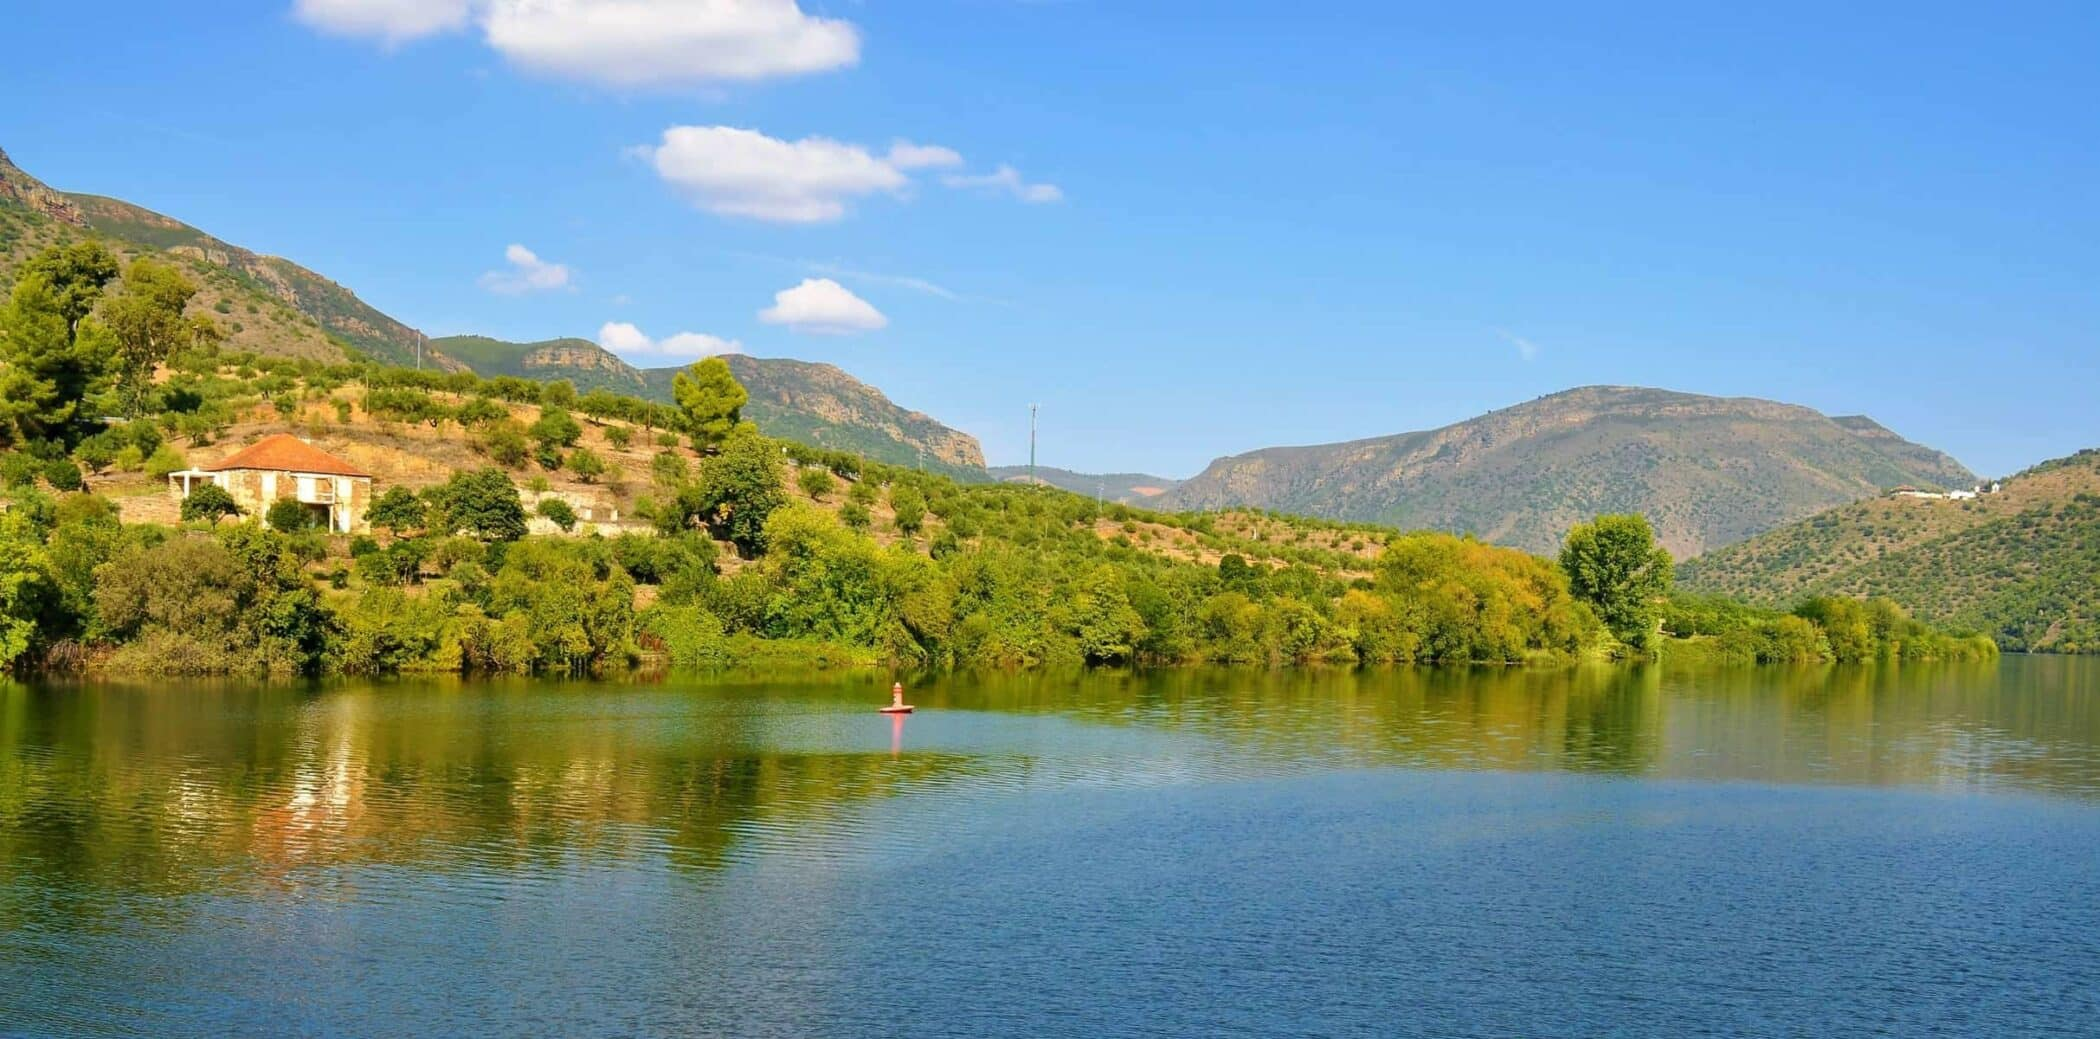 Photo of the river Douro, a house and the blue sky - Trás-os-Montes and Alto Douro Province - Portugal